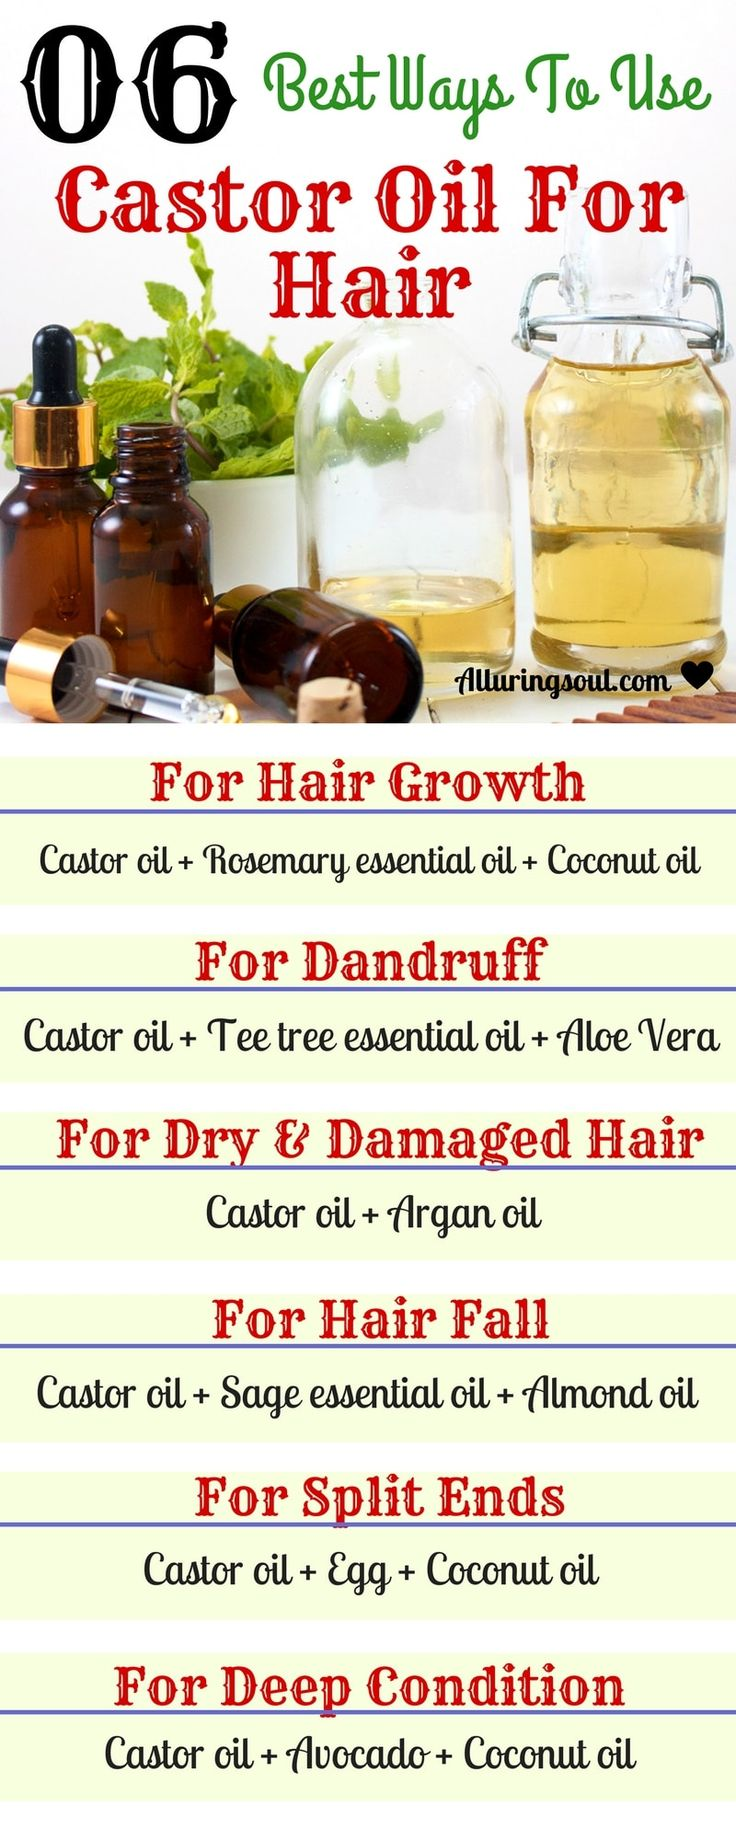 Castor oil is best for hair growth and other hair problems like dry, frizzy hair, split ends and dandruff because of essential nutrients present in it which make hair healthy and strong.